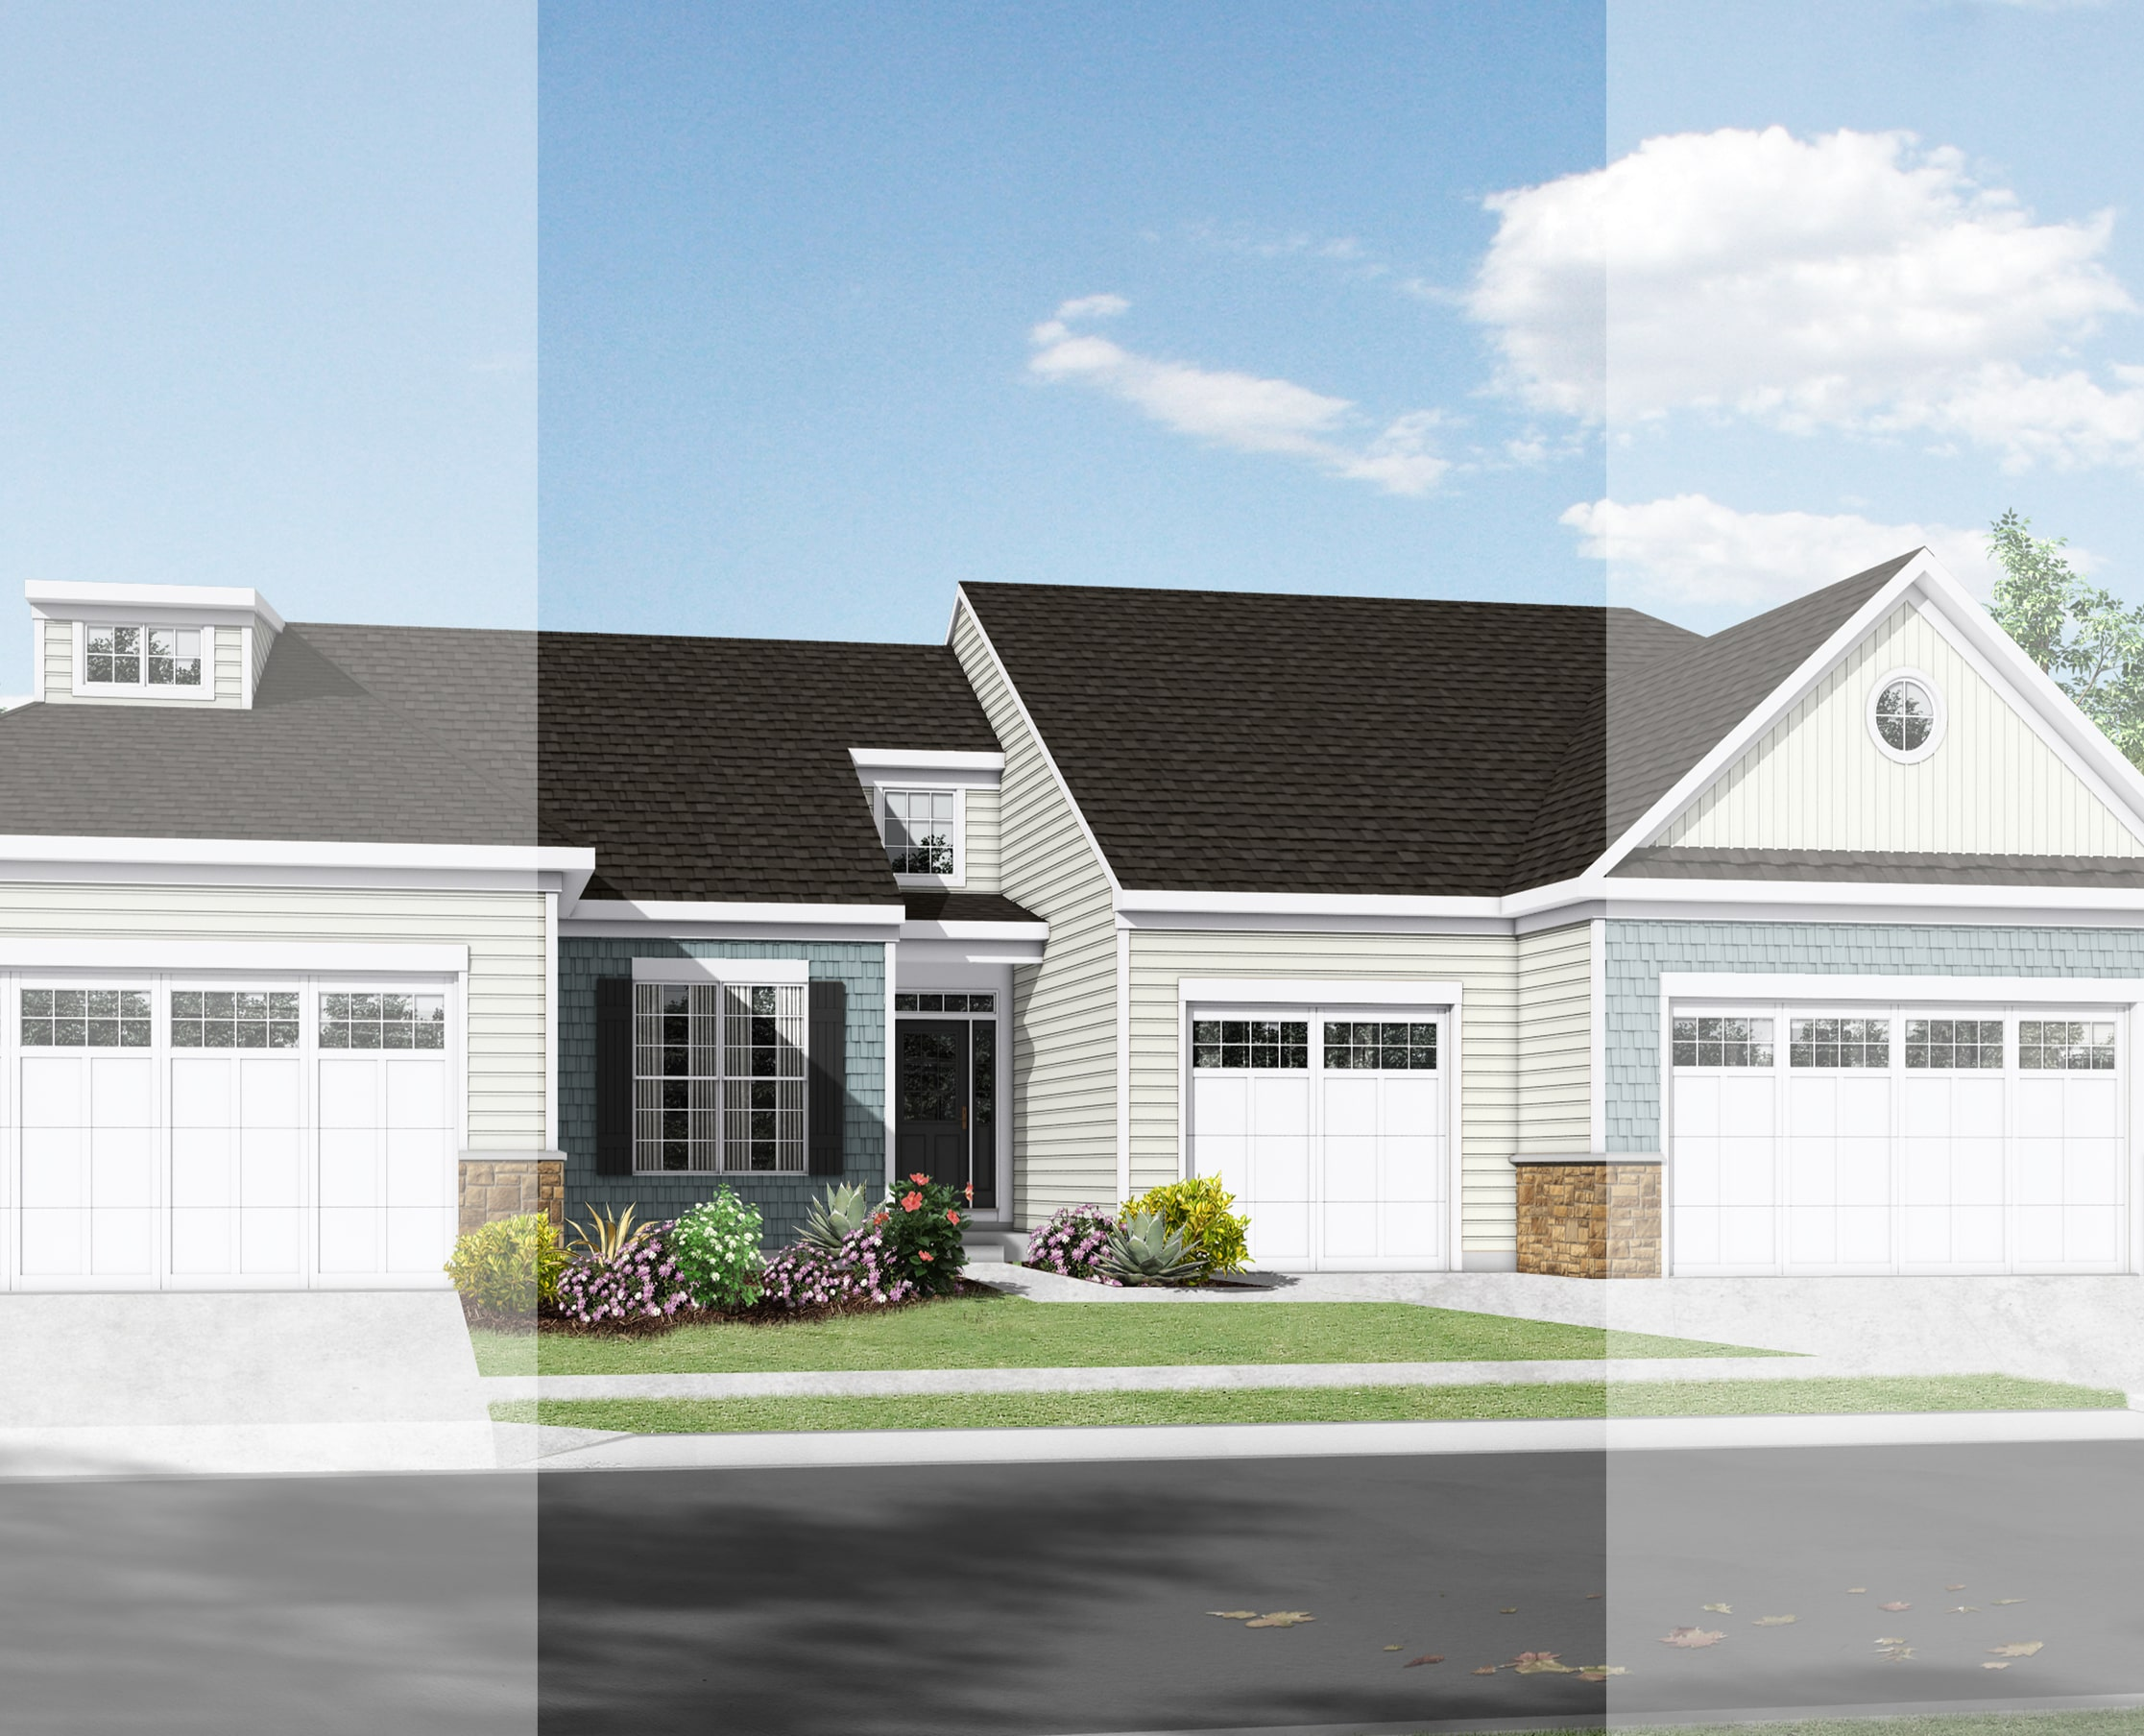 New home exterior from McKee Builders.